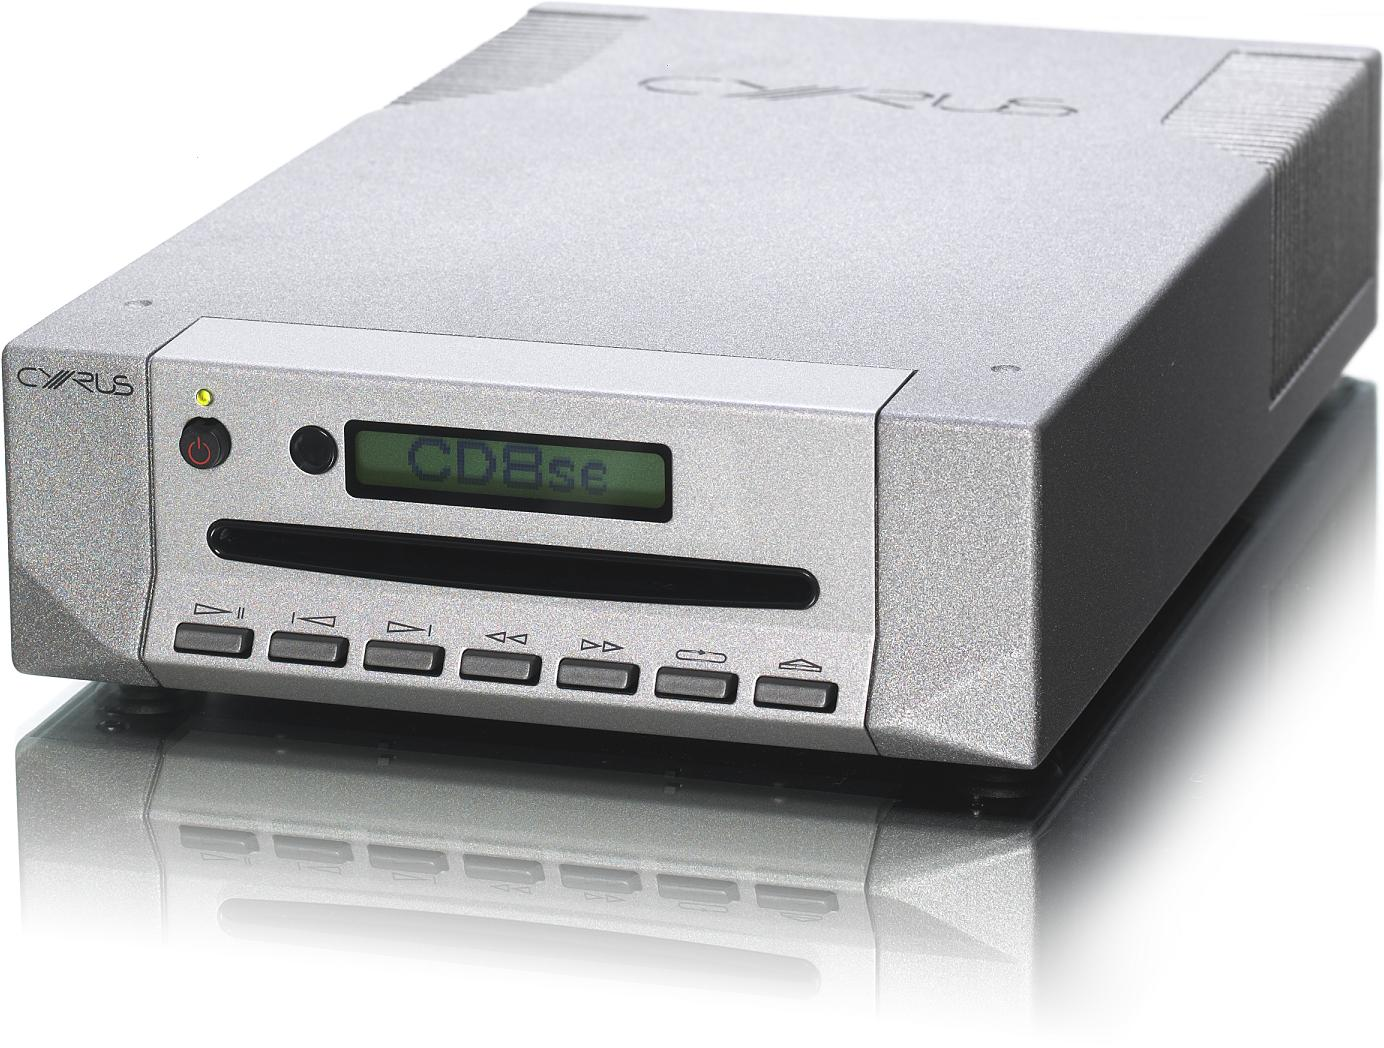 Cyrus CD8 SE2 CD Player